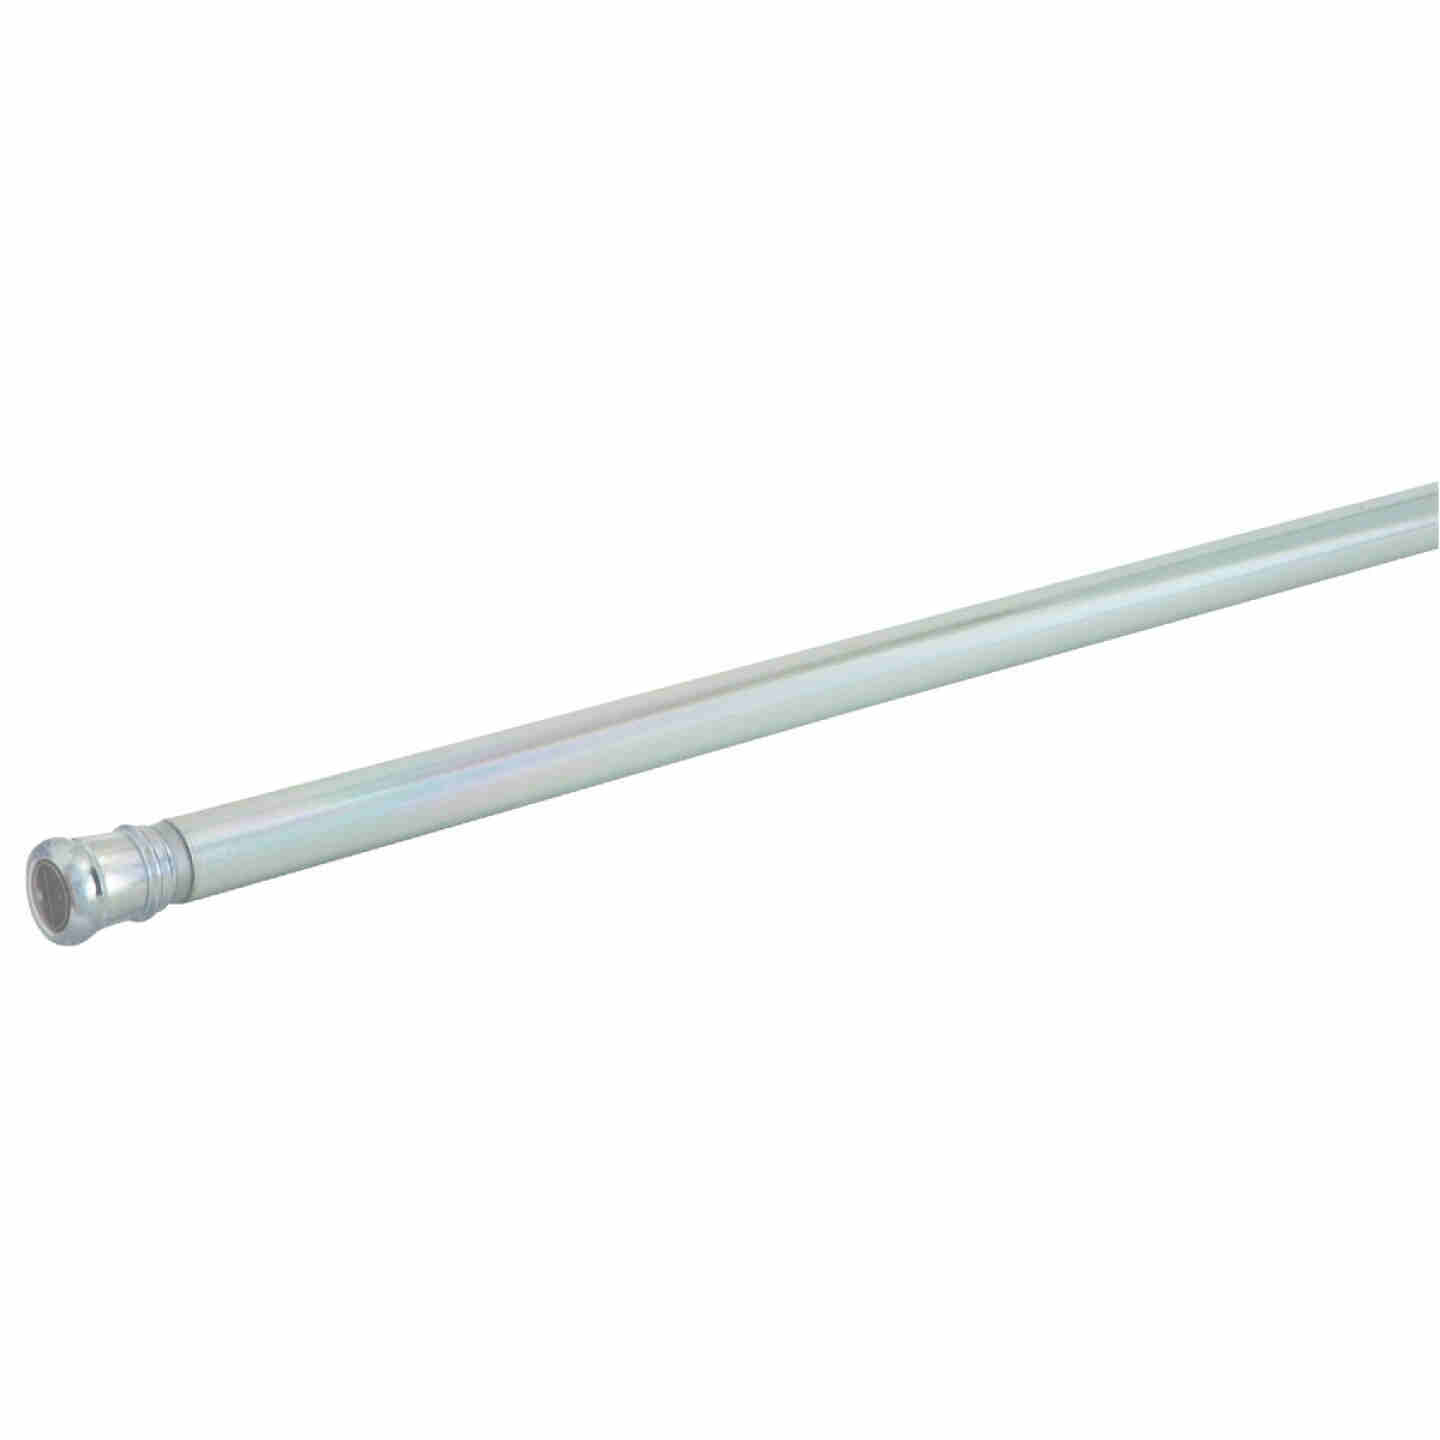 Zenith Straight 42 In. To 72 In. Adjustable Tension Shower Rod in Chrome Image 1